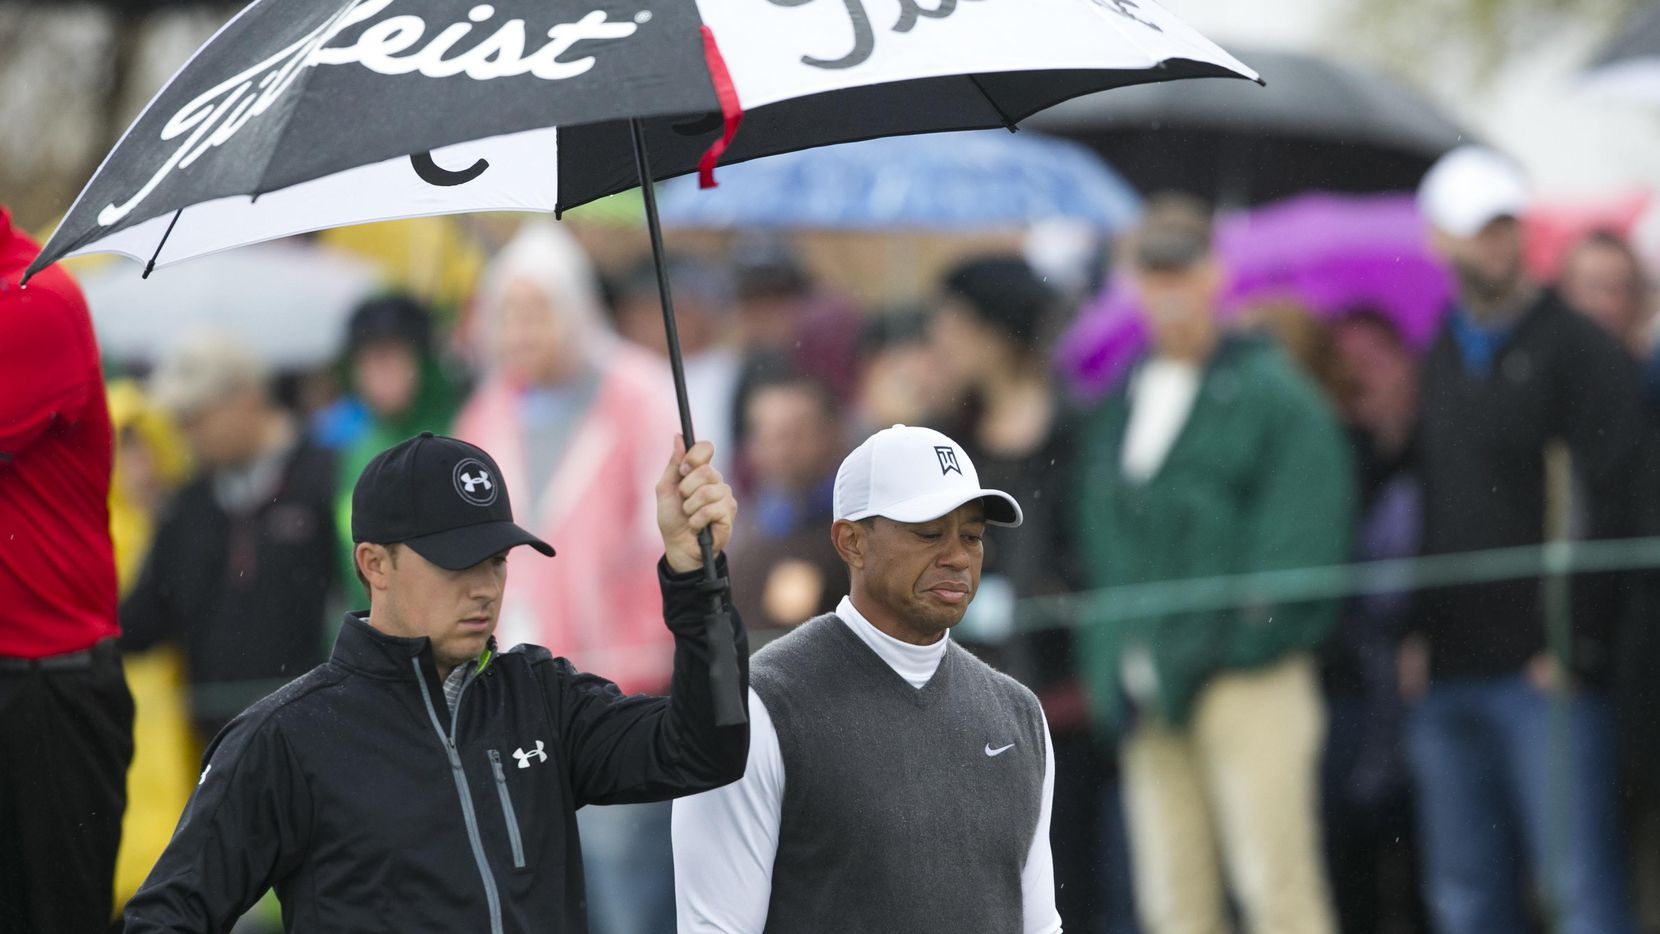 Jan 30, 2015; Scottsdale, AZ, USA; PGA golfer Jordan Spieth holds an umbrella as he walks with PGA golfer Tiger Woods on the sixth hole during the second round of the Waste Management Phoenix Open at TPC Scottsdale. Mandatory Credit: David Wallace-Arizona Republic via USA TODAY Sports